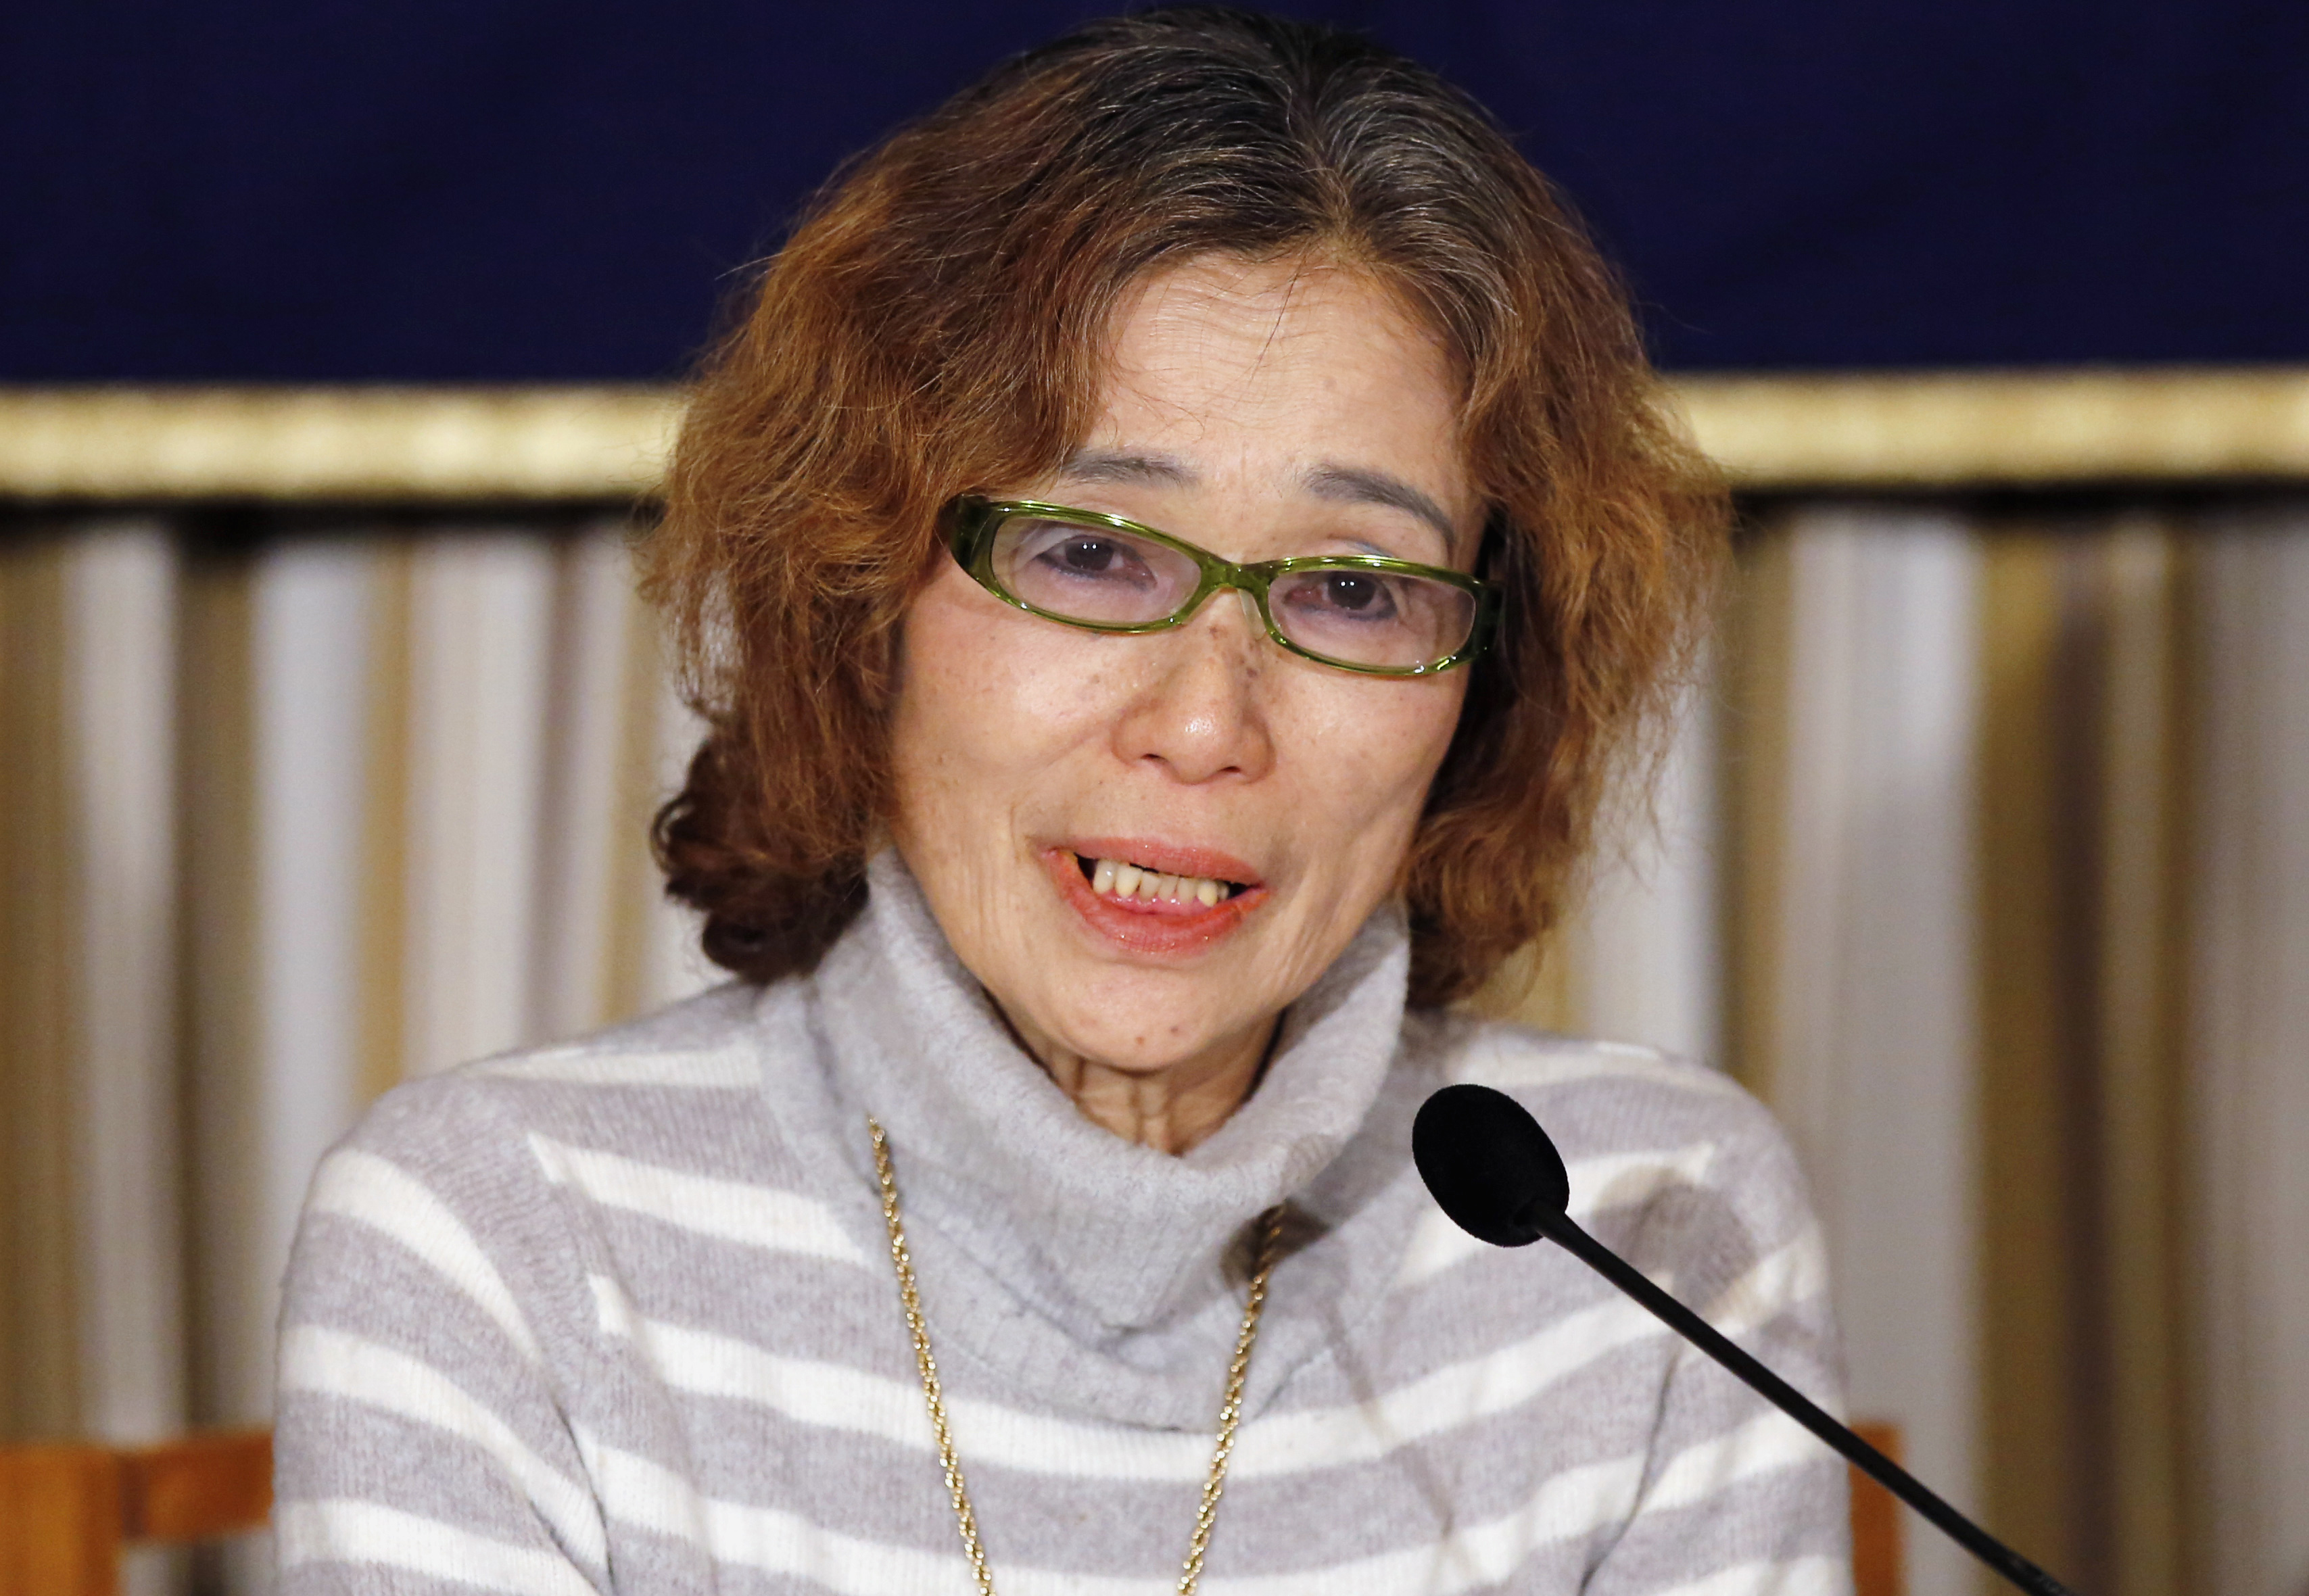 Junko Ishido, mother of Kenji Goto, a Japanese journalist being held captive by Islamic State militants along with another Japanese citizen, speaks during a news conference at the Foreign Correspondents' Club of Japan in Tokyo on Jan. 23, 2015